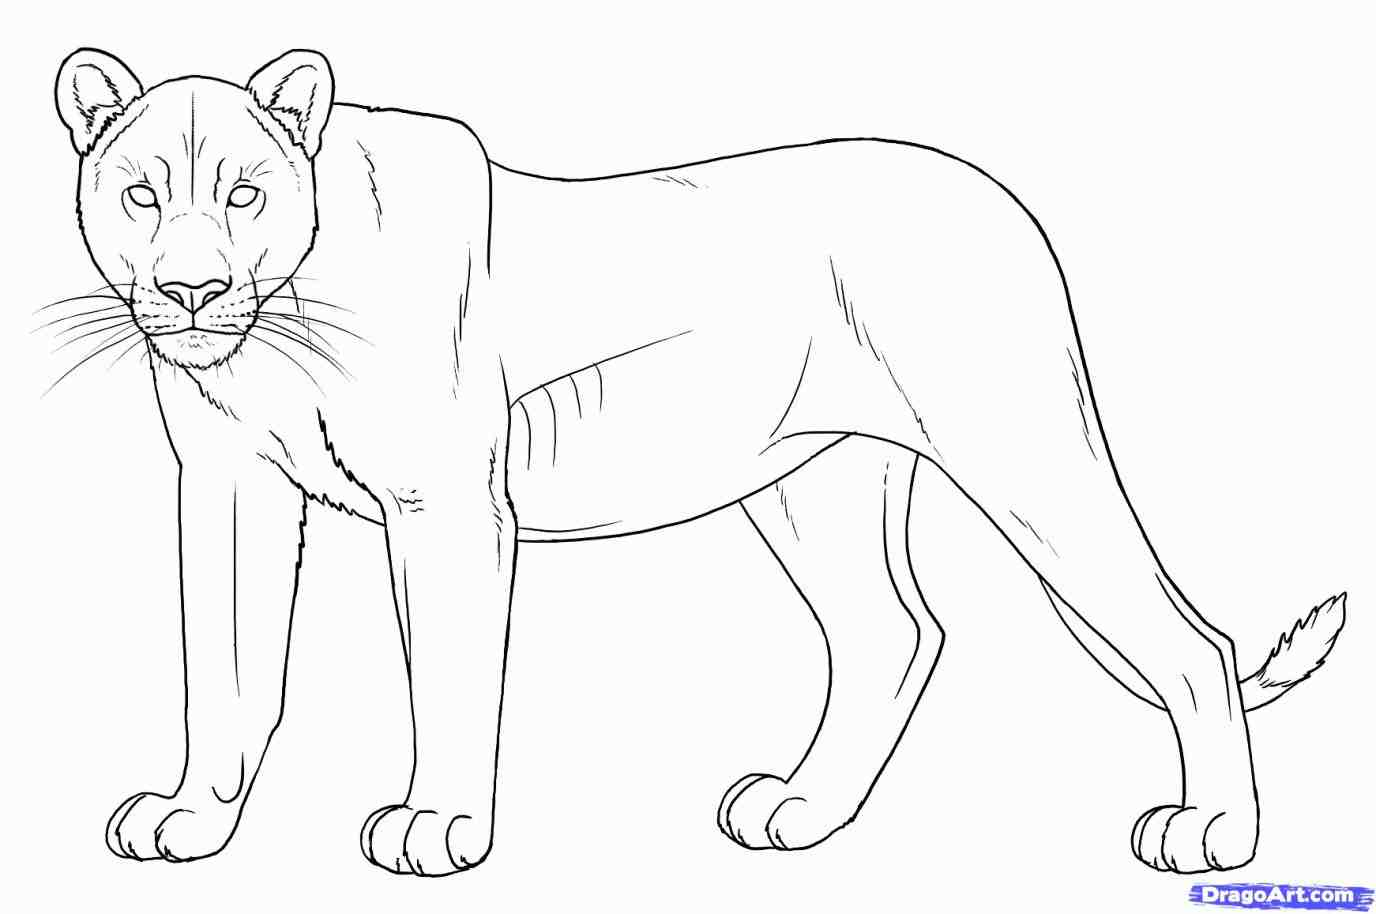 1376x914 How To Draw A Lion Head Step By Step Easy